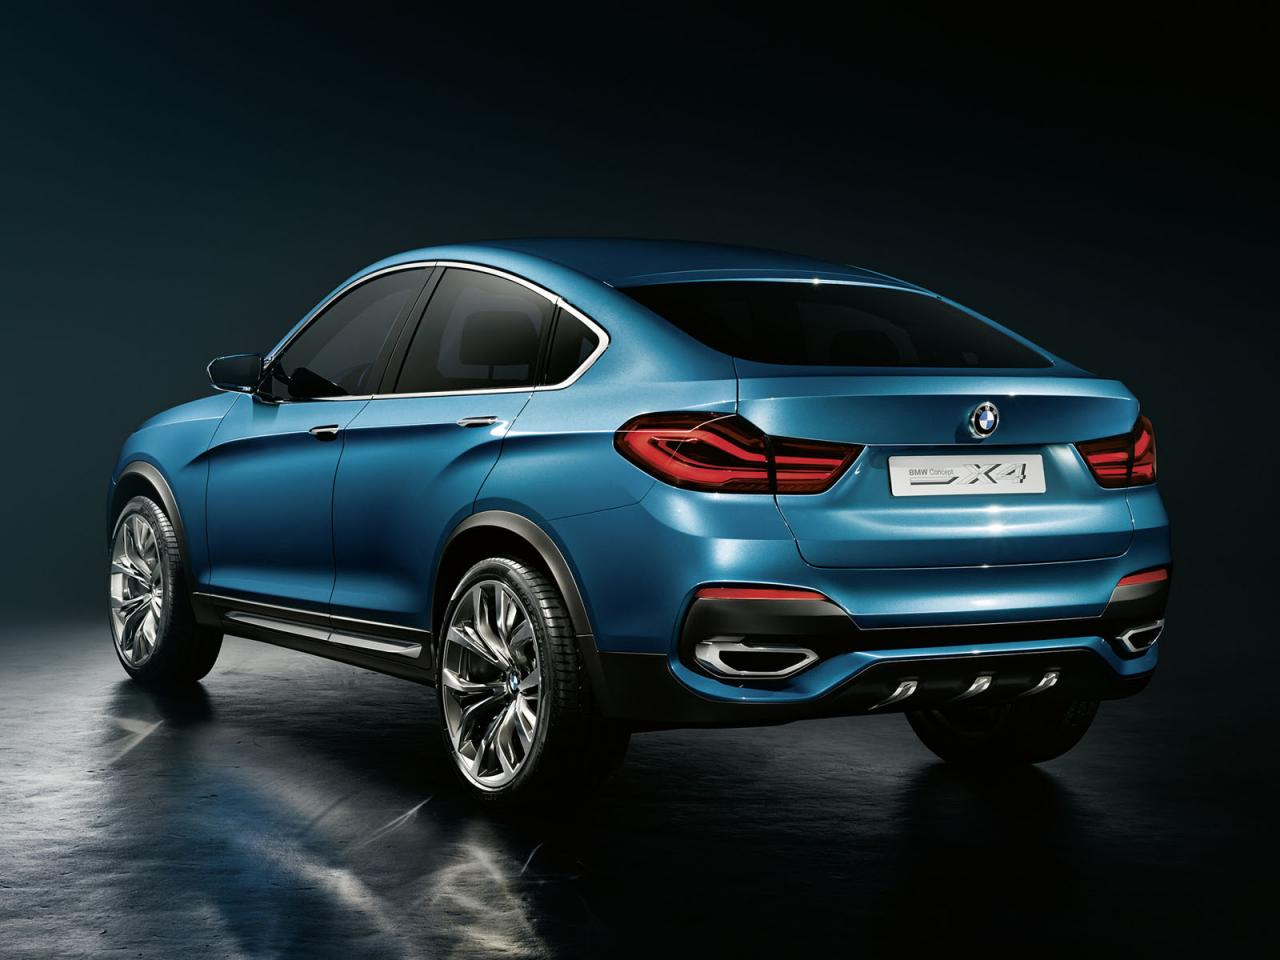 Highly Anticipated 2015 BMW X4 Release Date in March 2014 | Motoroids